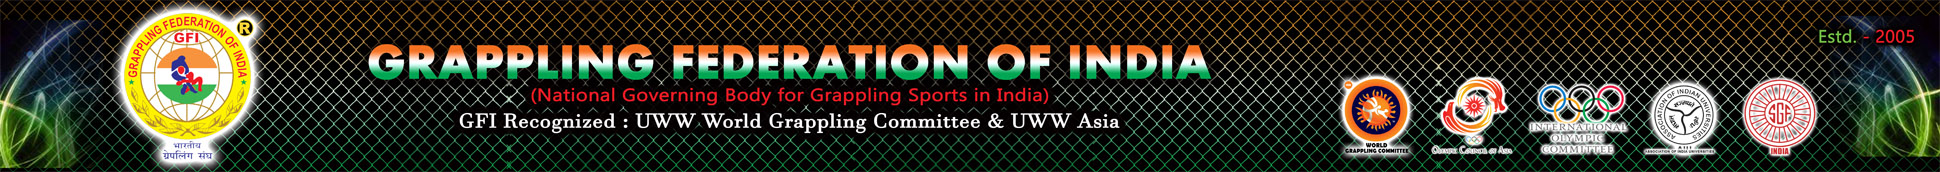 Grappling Federation of India (National Sports Federation